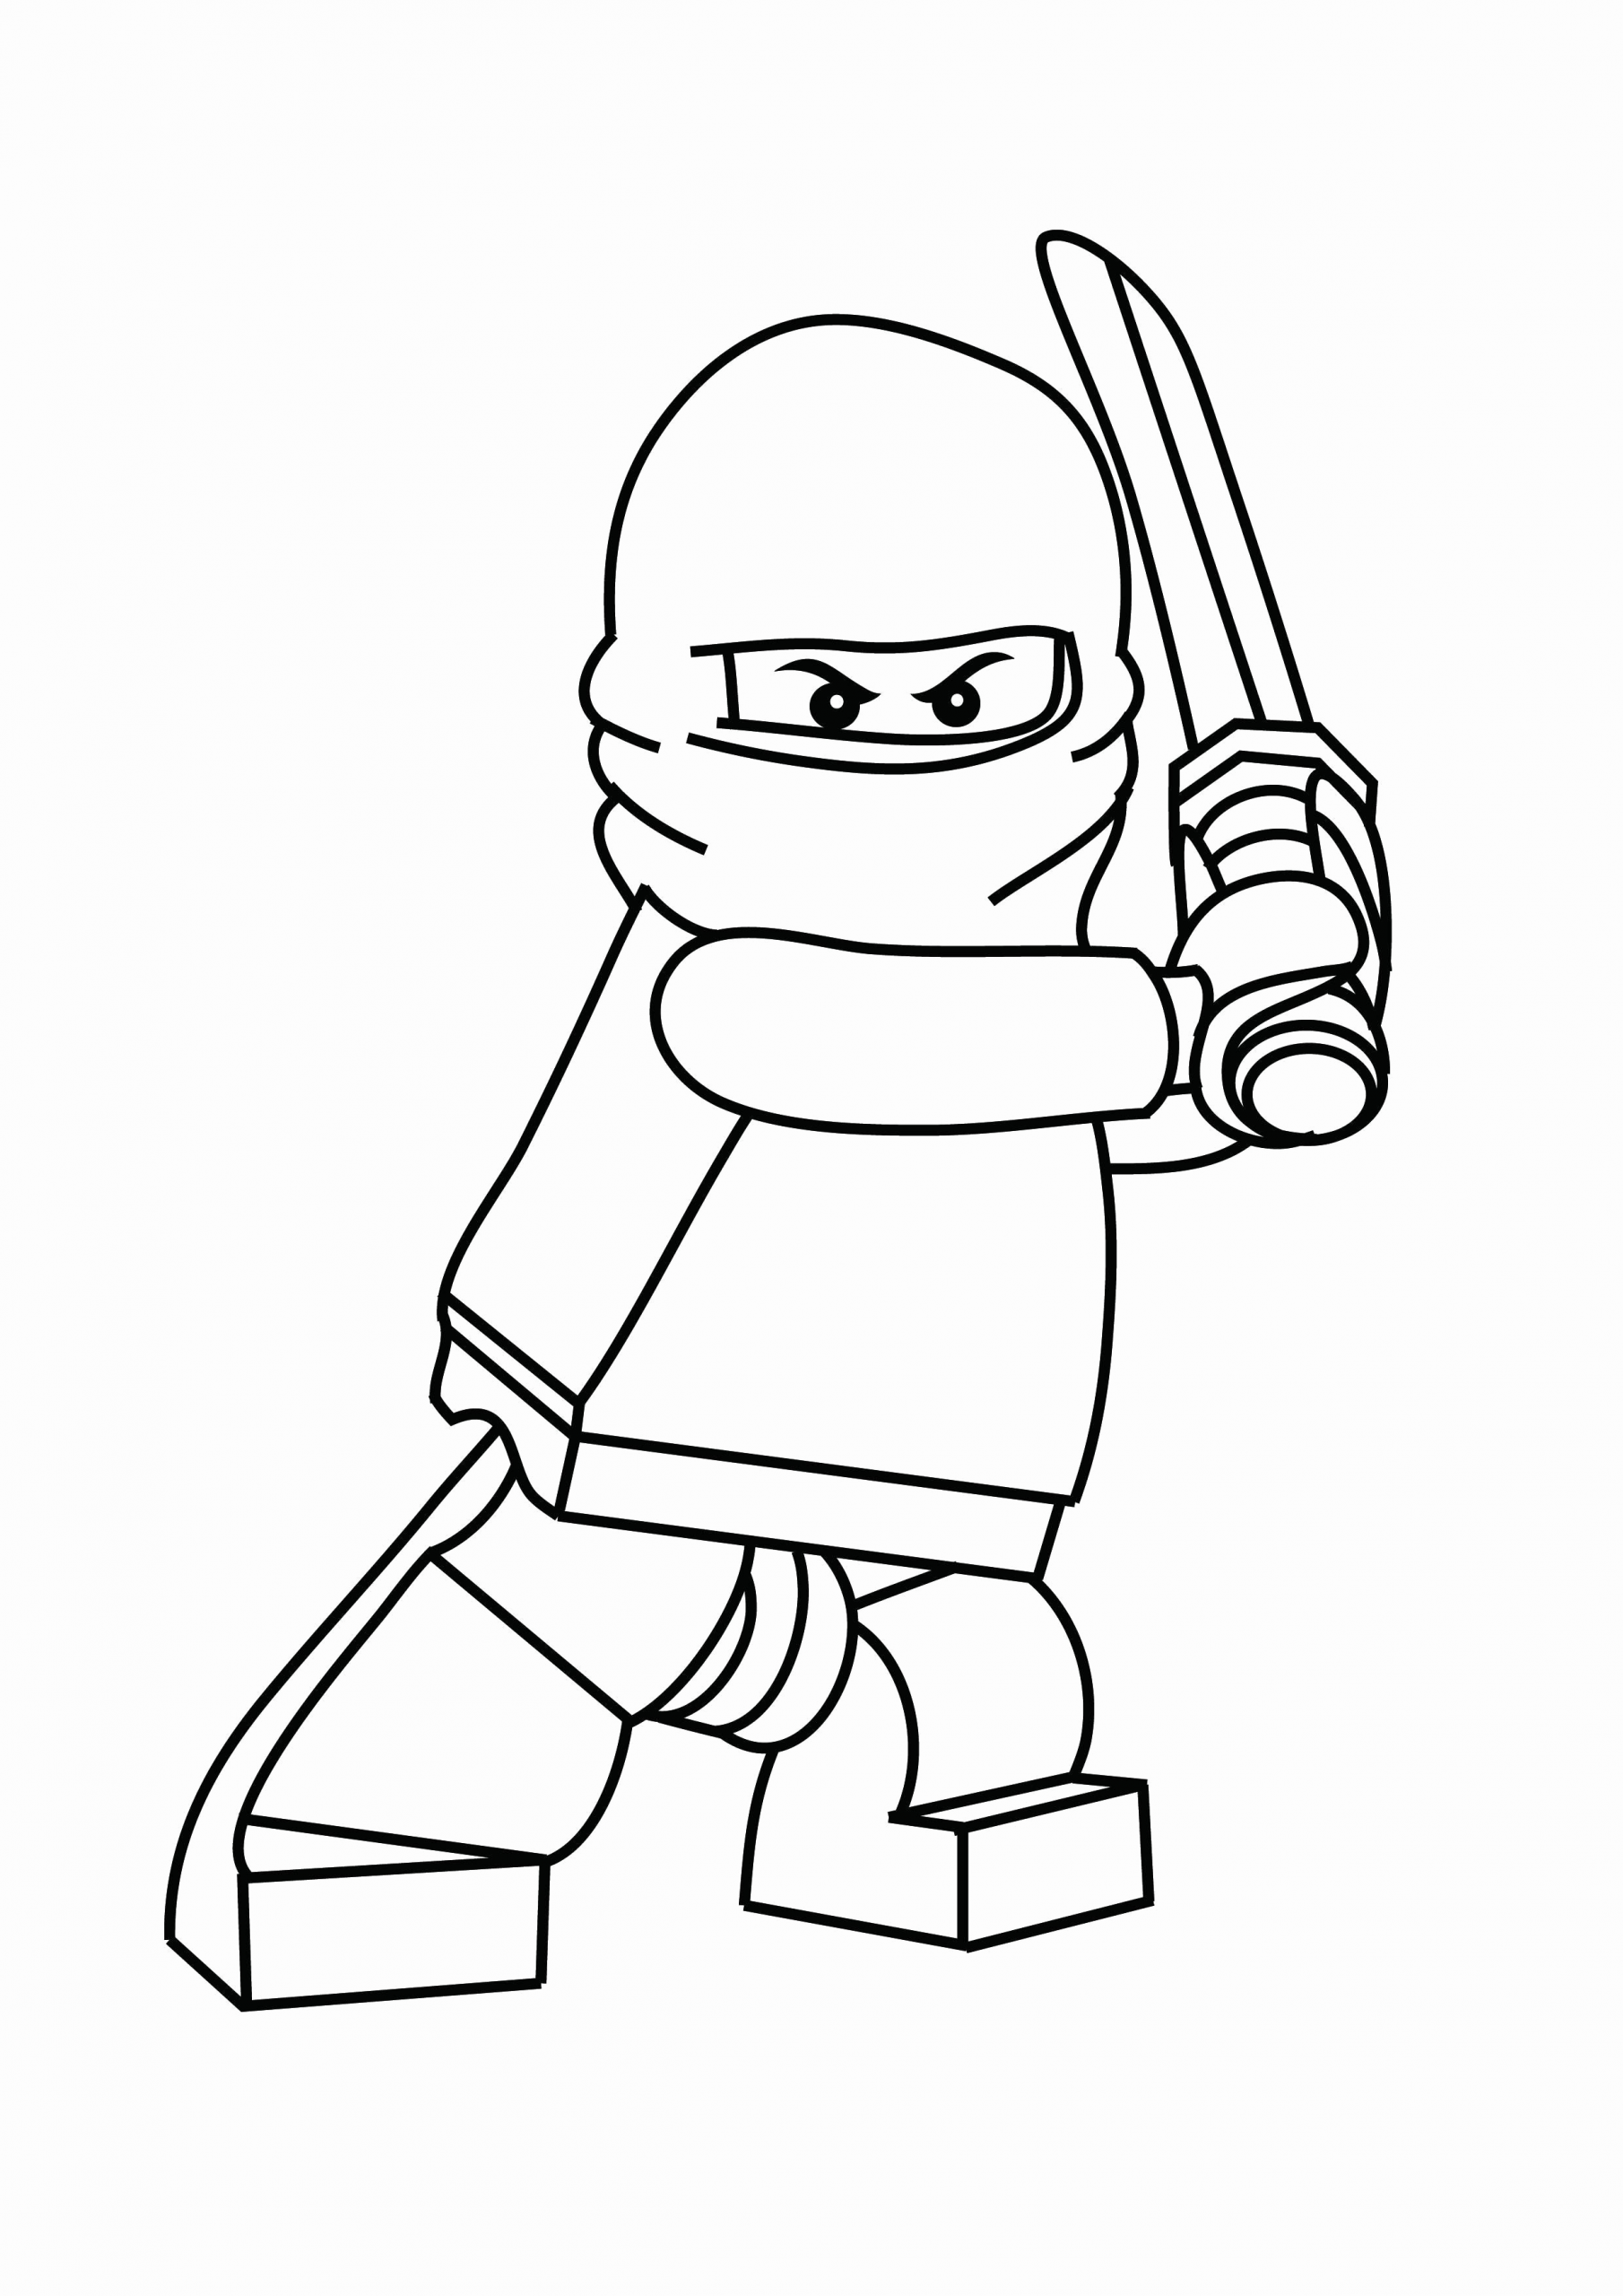 Pin On Lego Coloring Pages For Kids